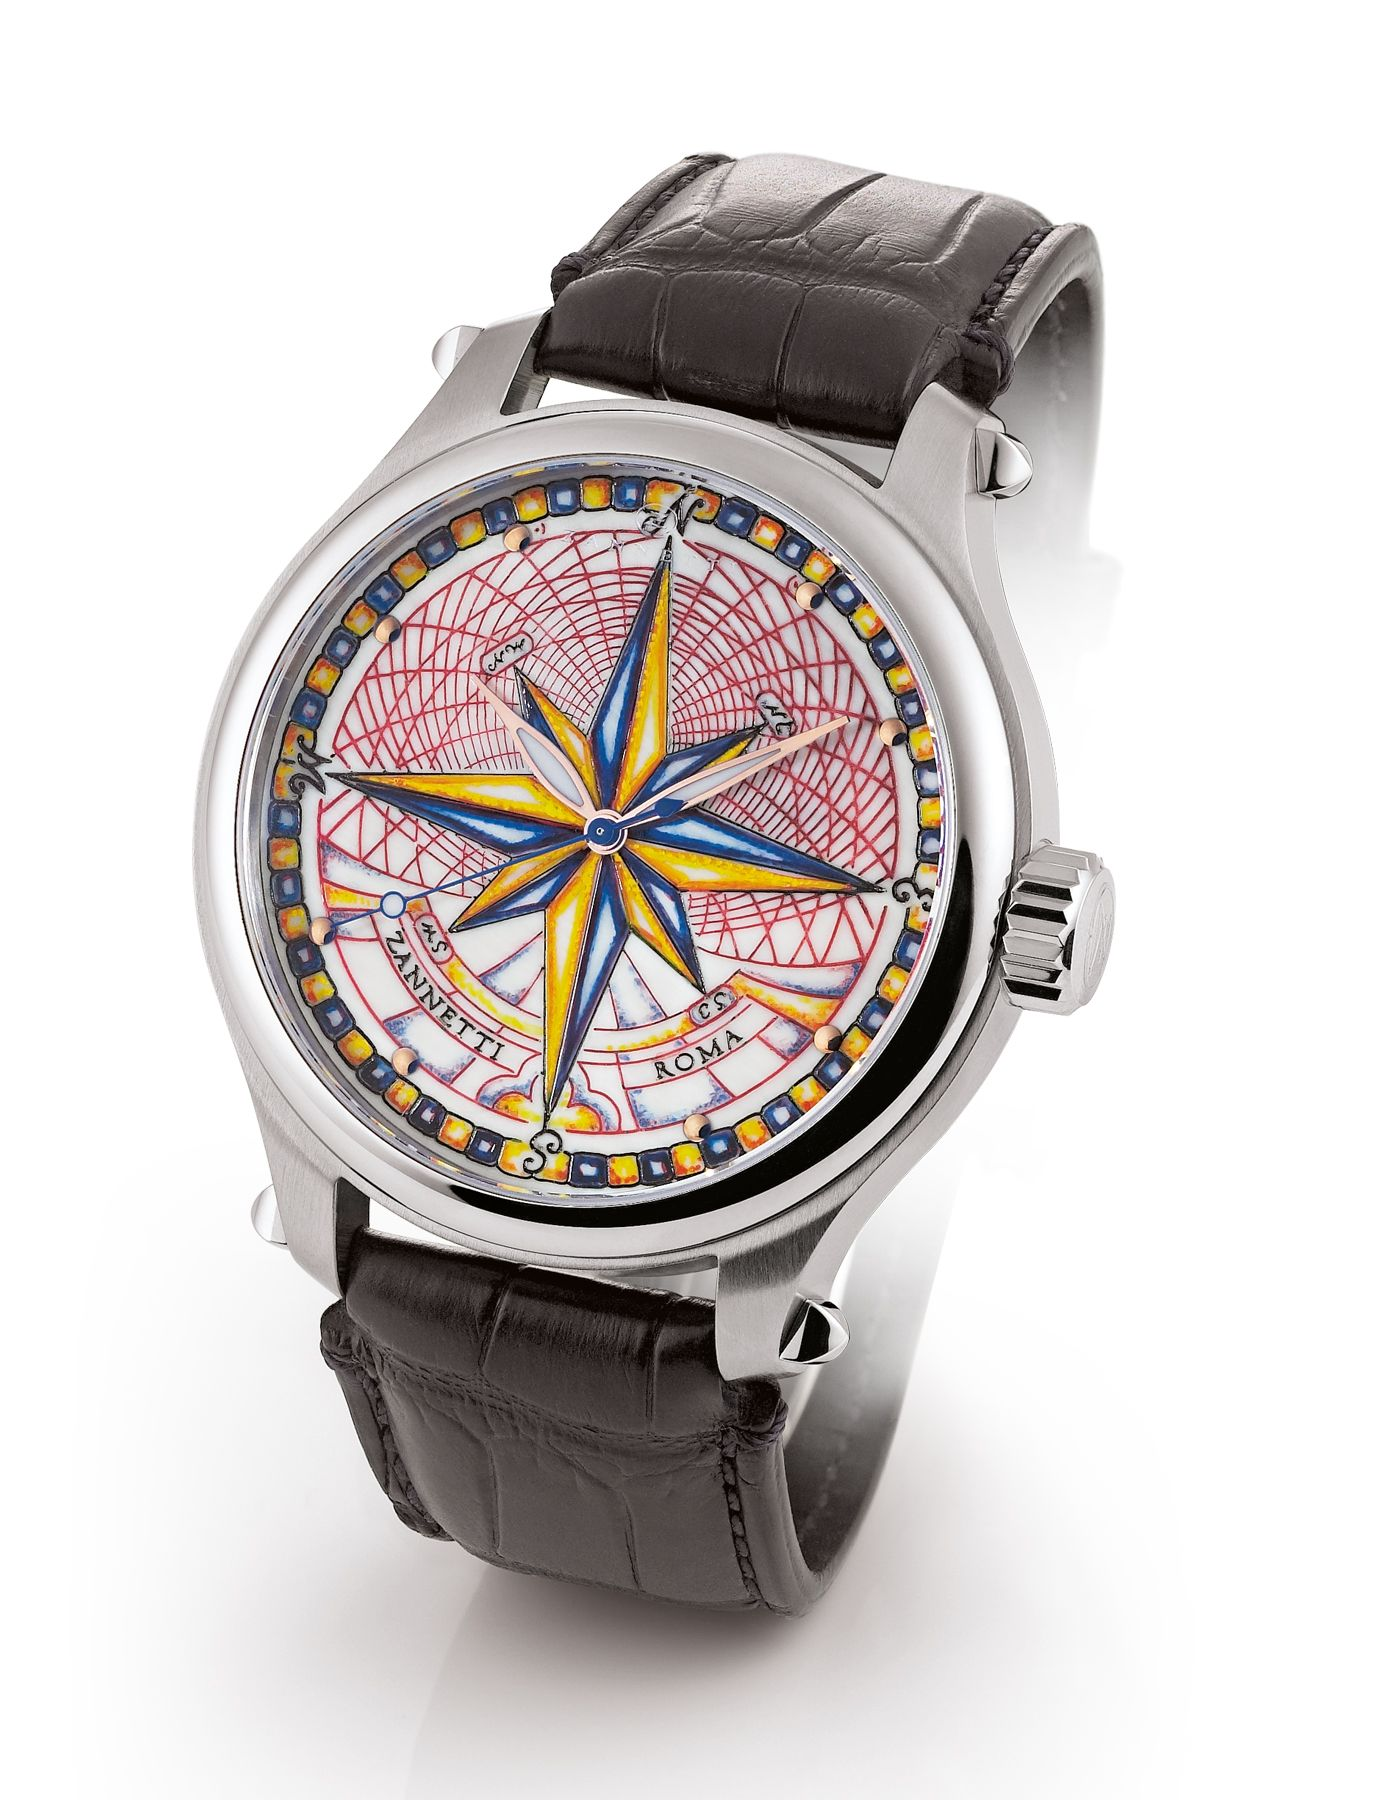 Zannetti Magnifi Collection The Is Characterised By A Personalized Extra Large Watch Case And An Engraved Dial Which Exhibits